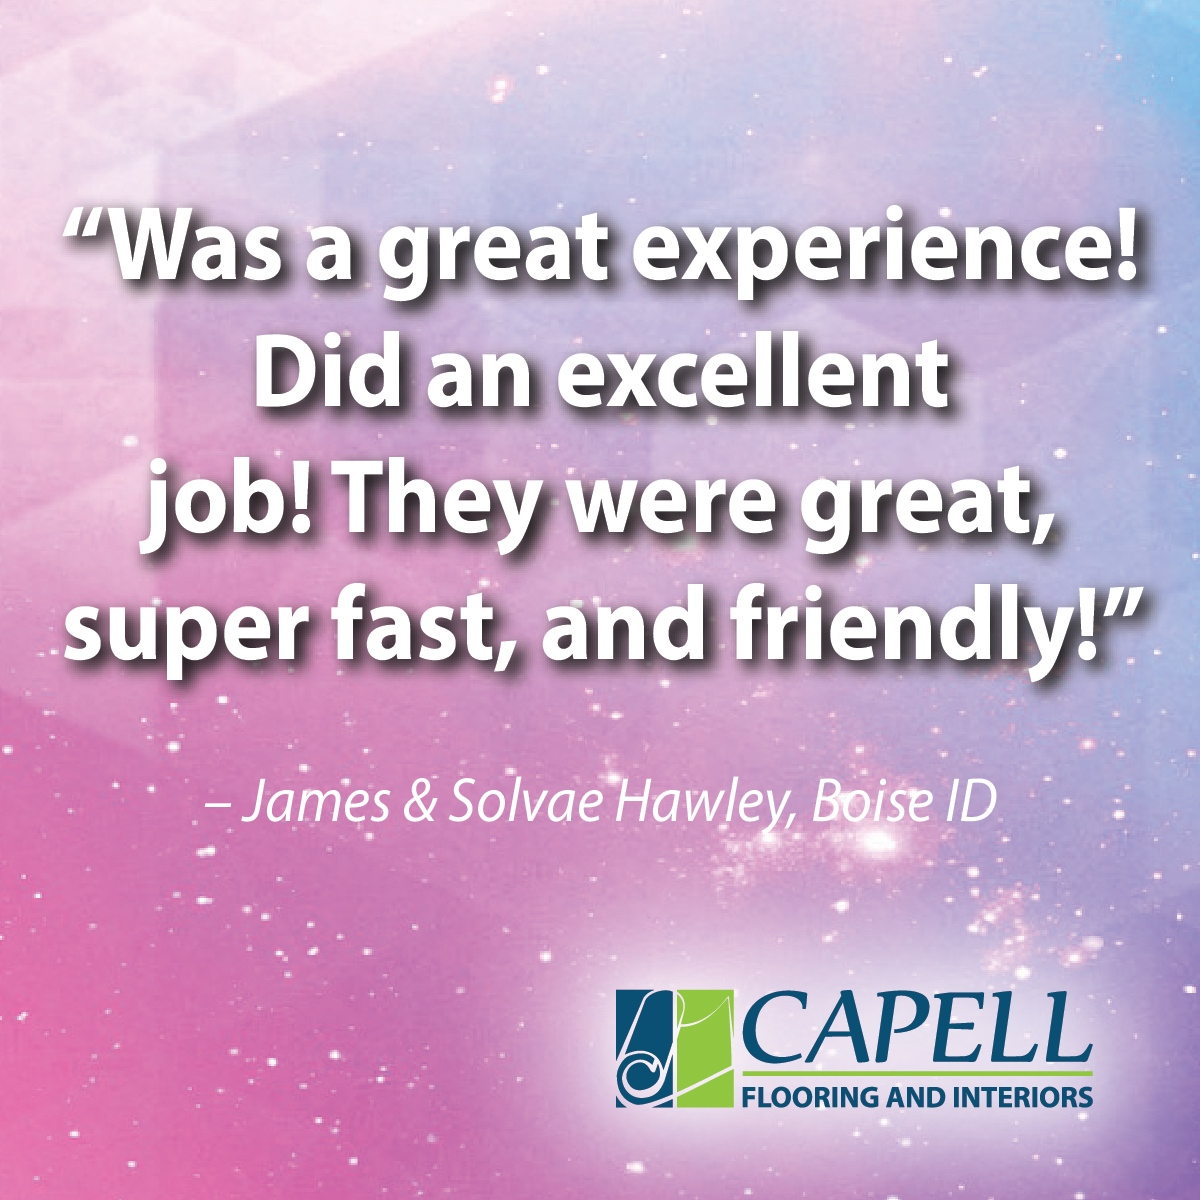 """""""Was a great experience! Did an excellent job! They were great, super-fast, and friendly!"""" - James & Solvae Hawley ------------  #happyclients #happy #contractorsofinsta #construction #interiordesign #constructionlife #design #contractor #homedesign #capellflooring https://t.co/5ZbwntT1EG"""